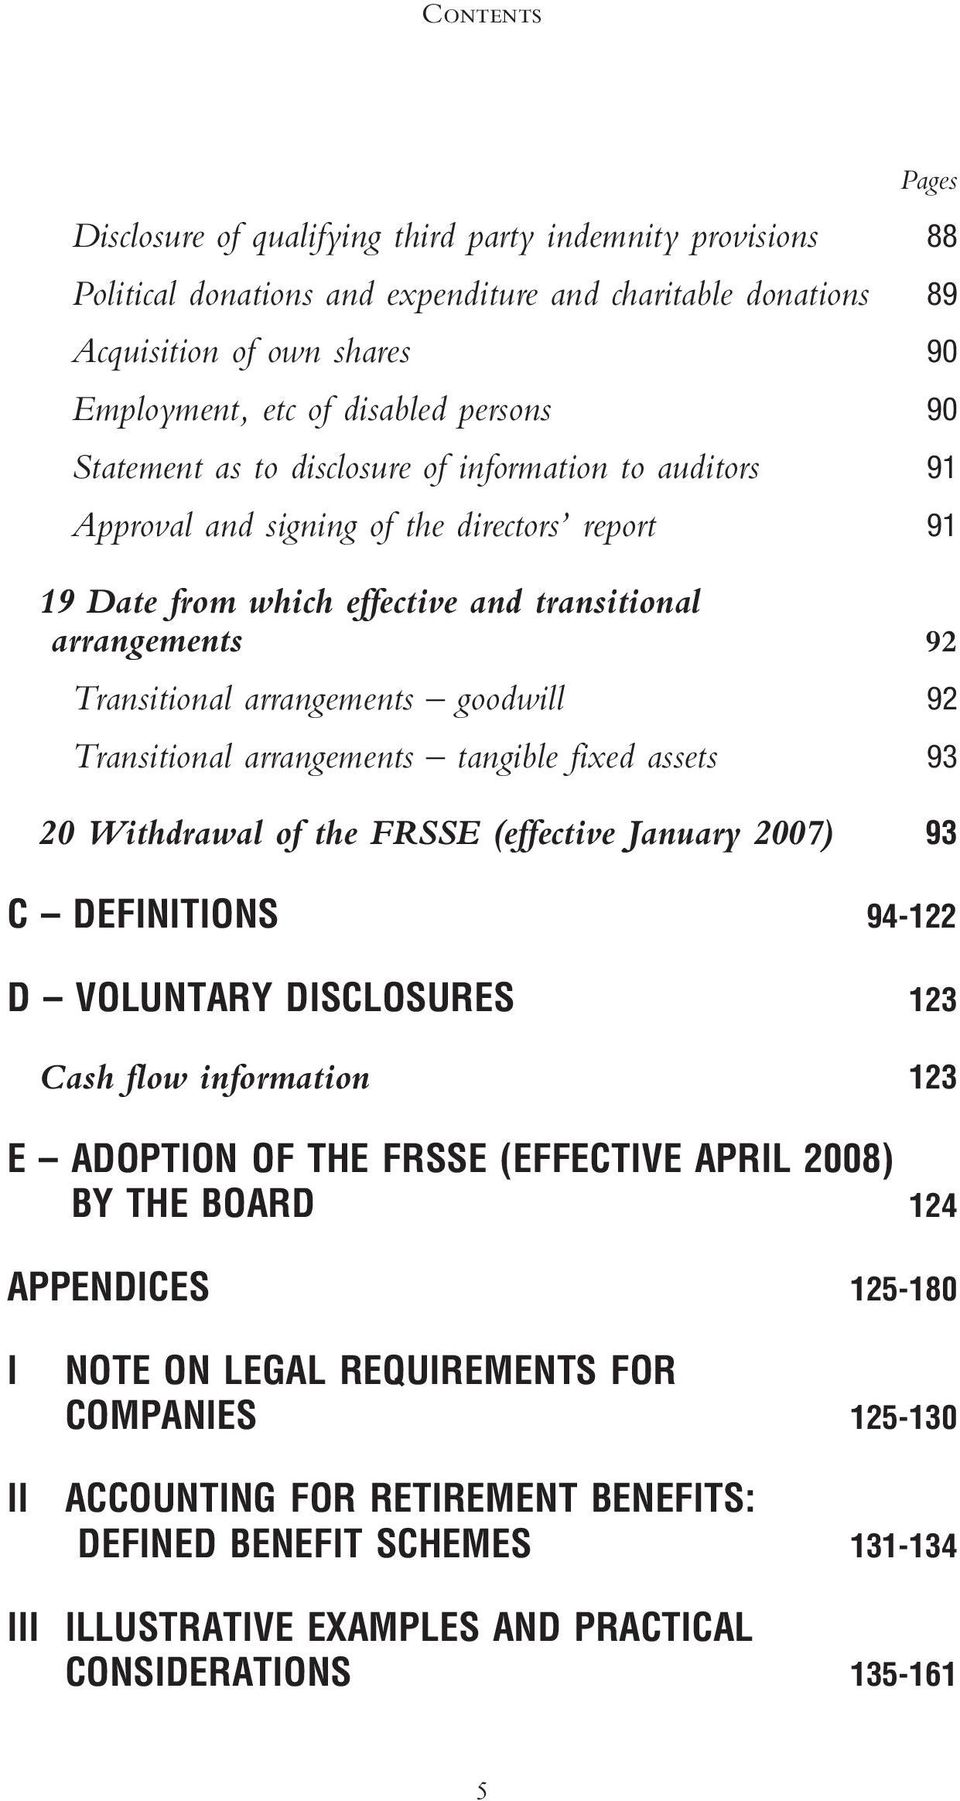 arrangements goodwill 92 Transitional arrangements tangible fixed assets 93 20 Withdrawal of the FRSSE (effective January 2007) 93 C DEFINITIONS 94-122 D VOLUNTARY DISCLOSURES 123 Cash flow